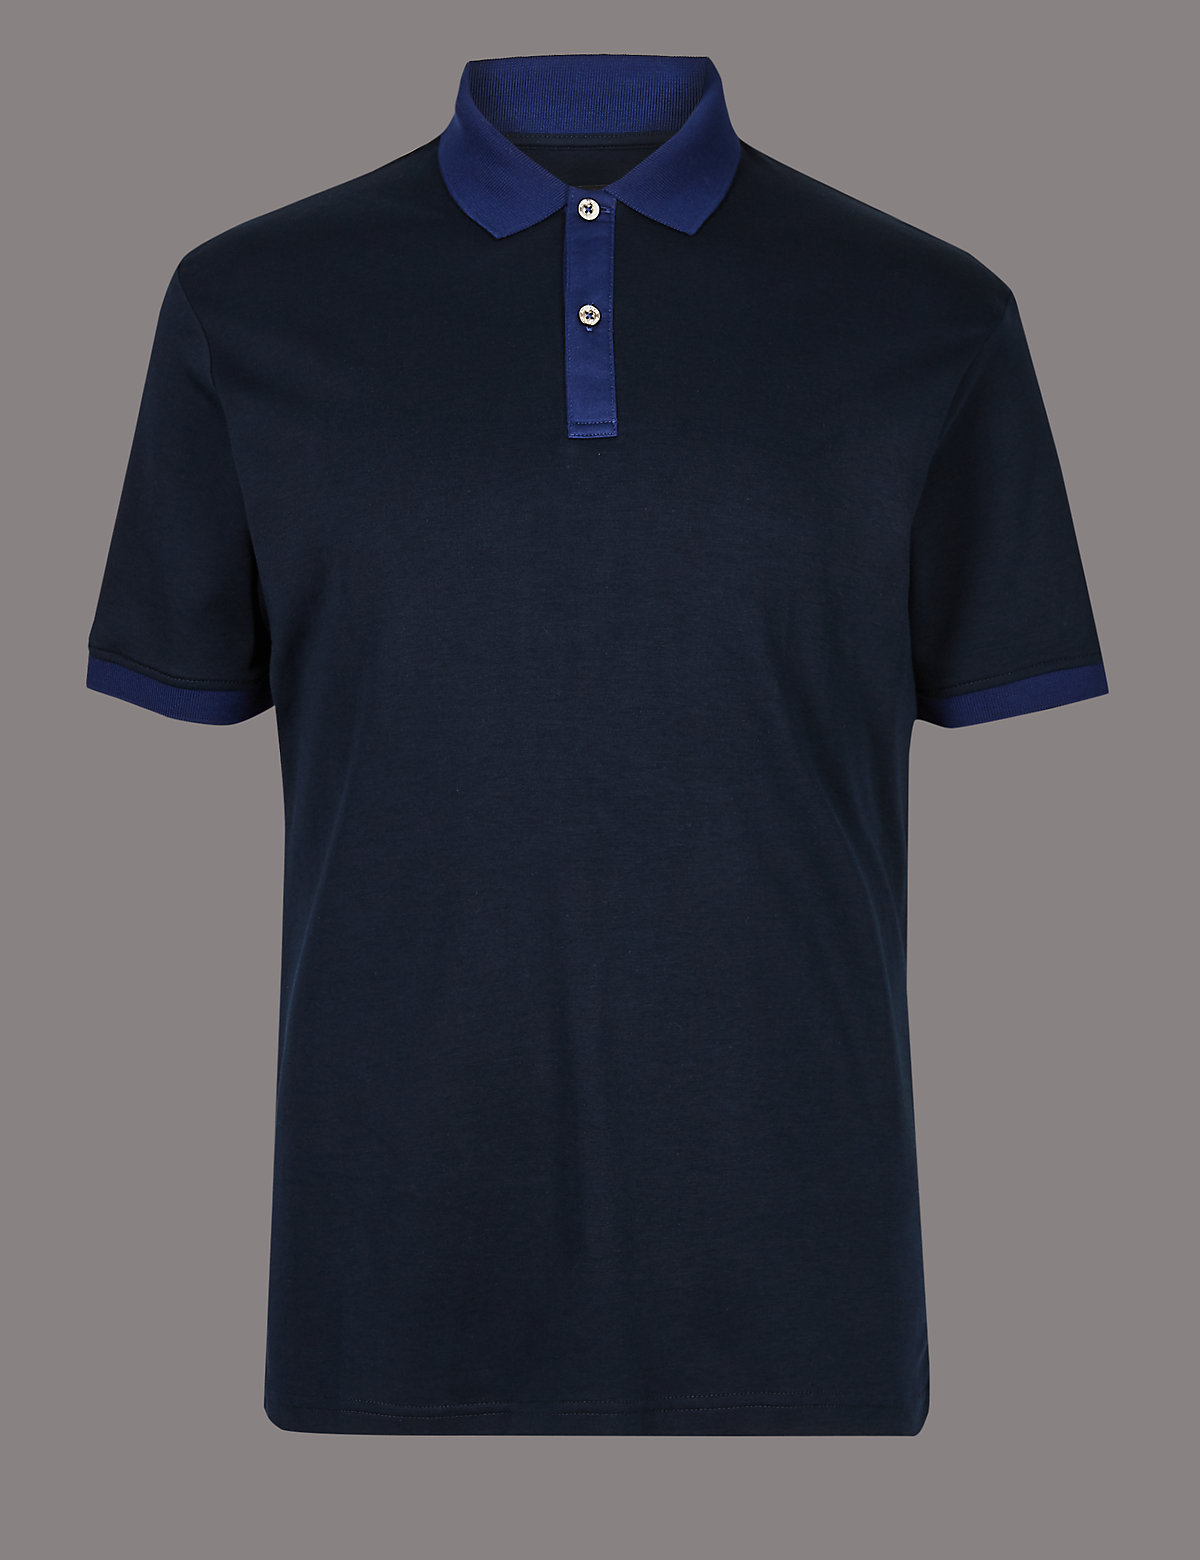 Marks & Spencer Navy Pure Cotton Contrast Collar Polo Shirt